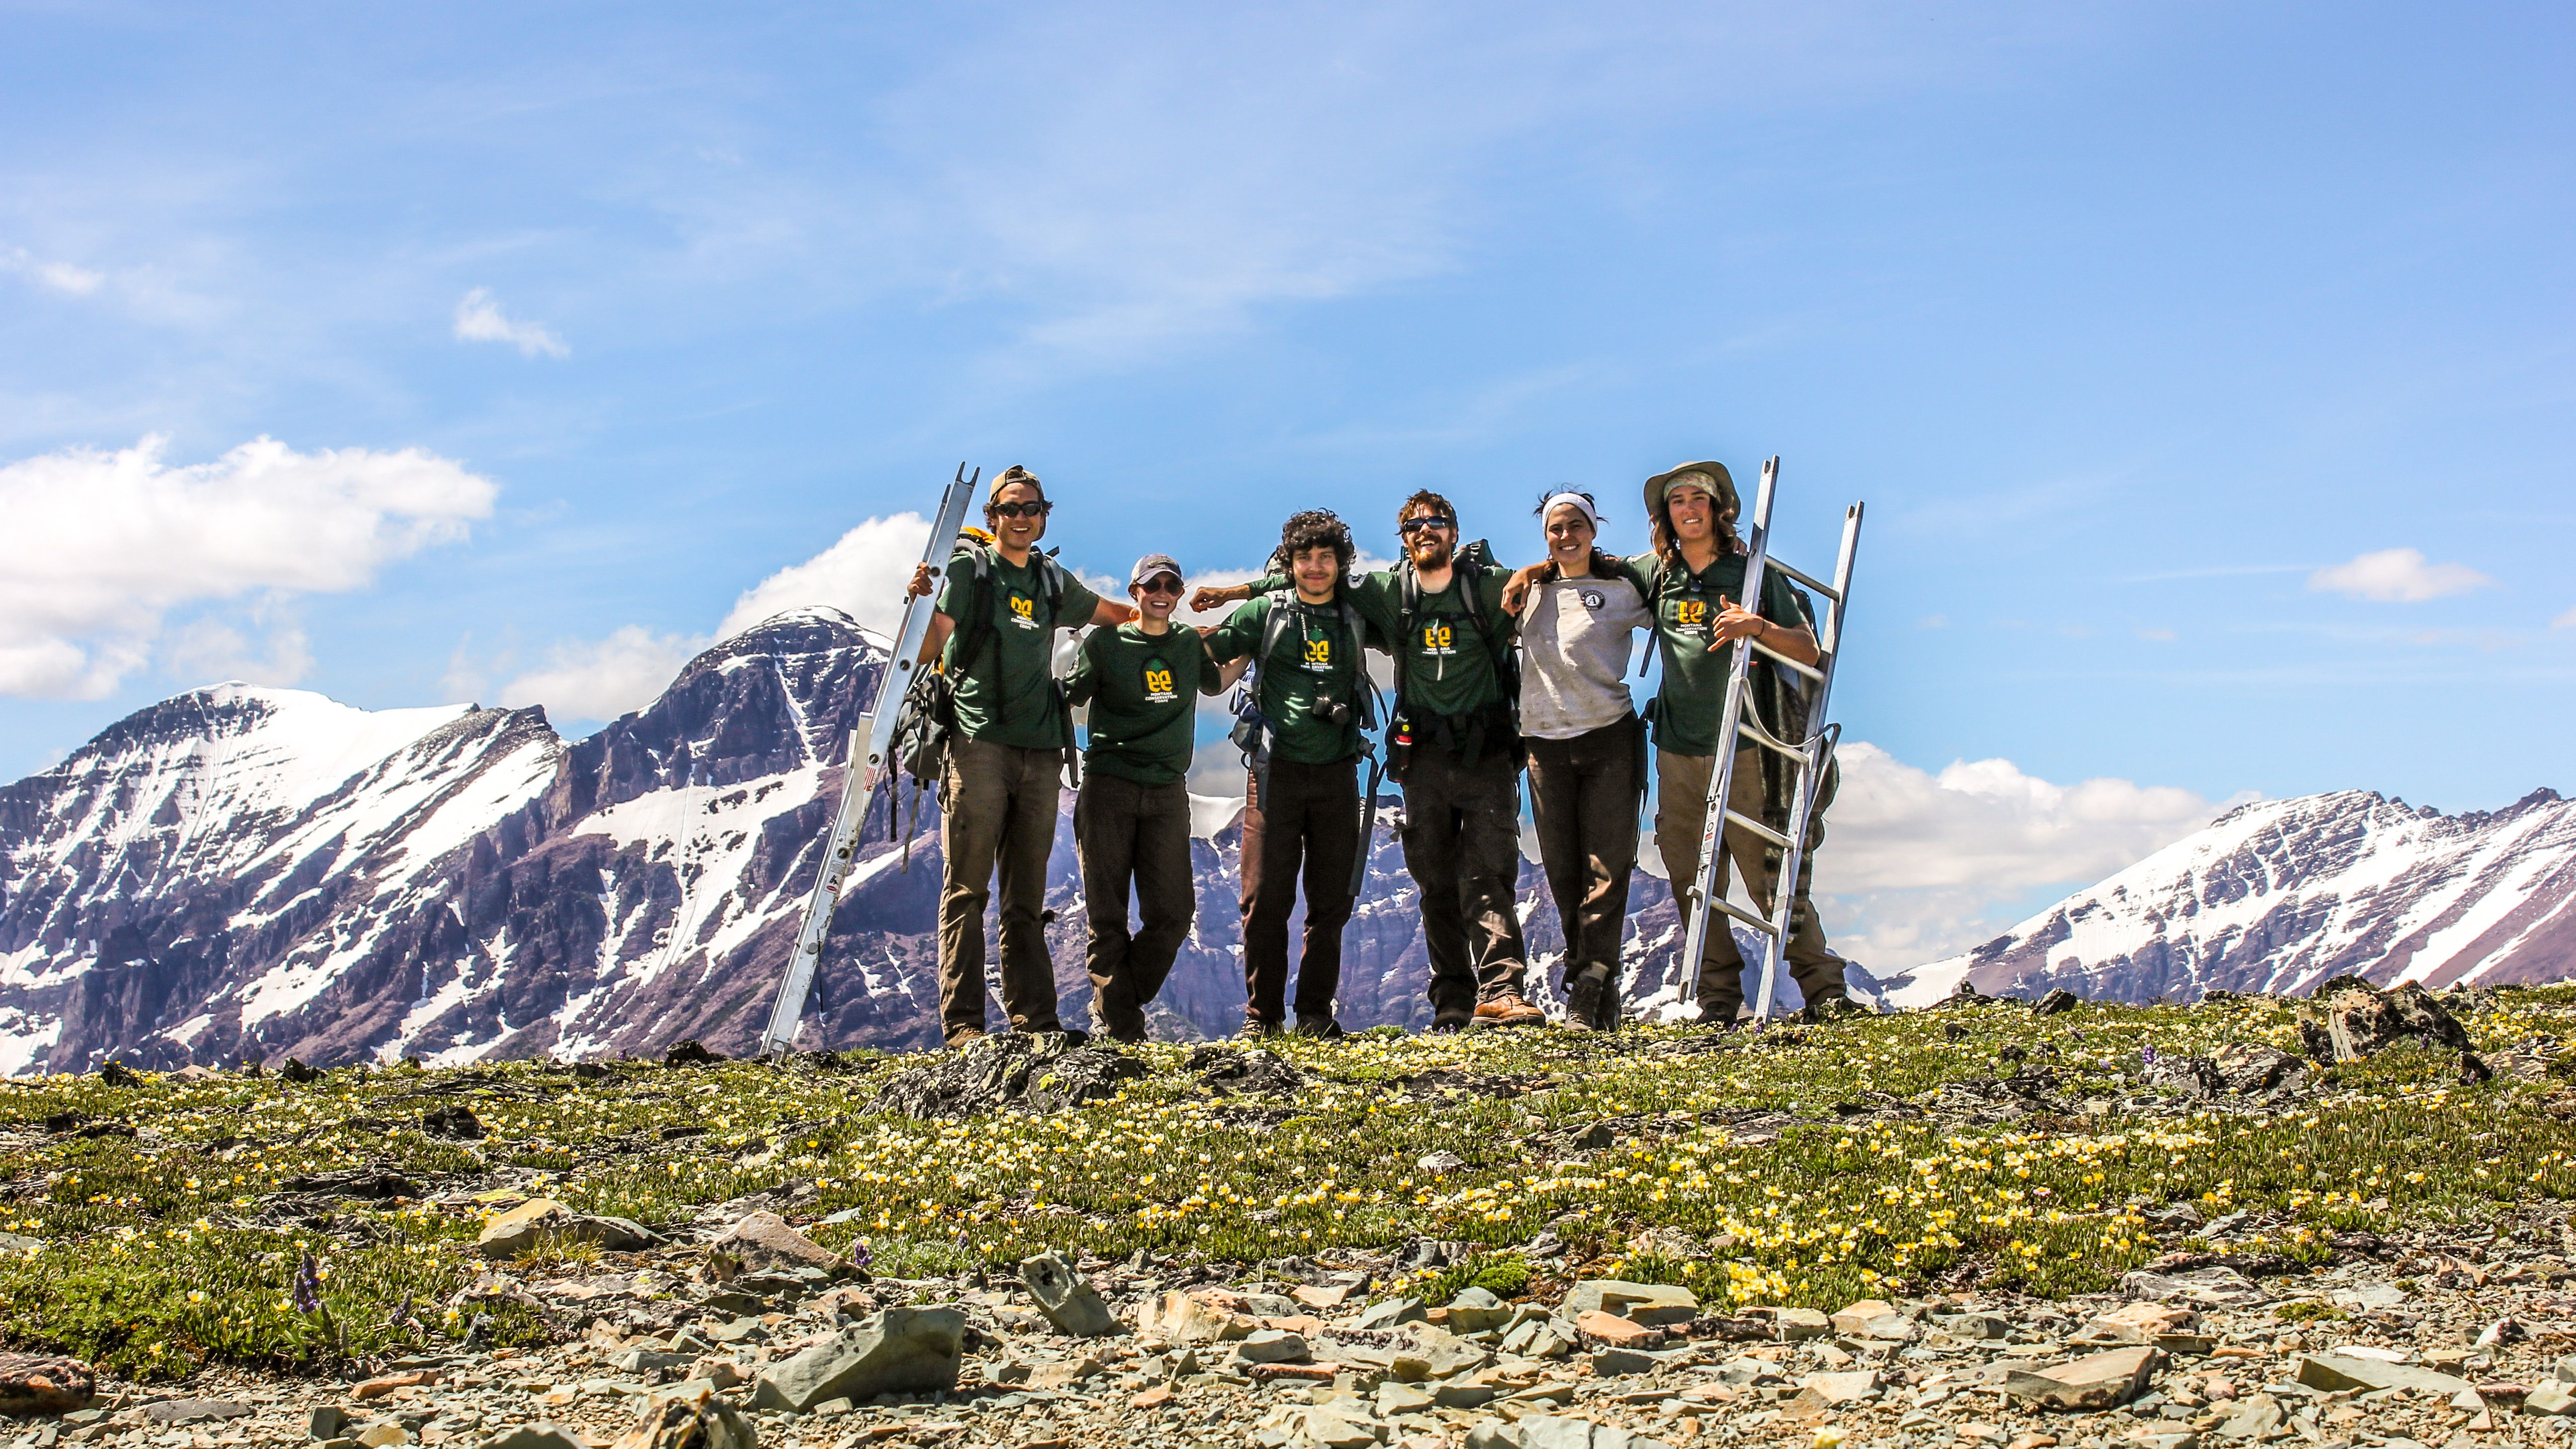 Six diverse crew members wearing MCC and AmeriCorps t-shirts and standing on a high mountain with a couple of ladders and it is sun shining day but the mountain peaks are covered in snow.